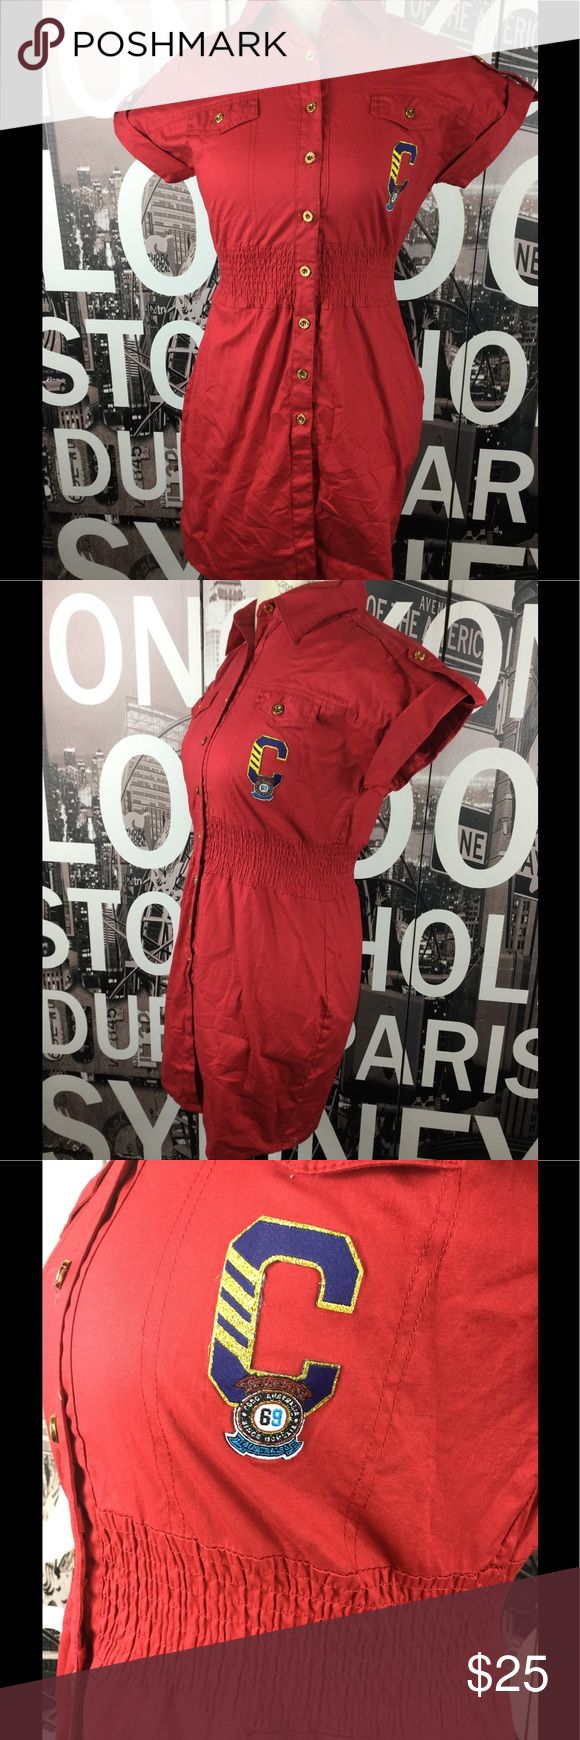 Stunning Coogi red bling shirt dress So amazing. Patch crest in front and logo bling on back. Size medium with gold buttons. Length 31 Bust 17 Waist 13.5 but stretchy COOGI Dresses